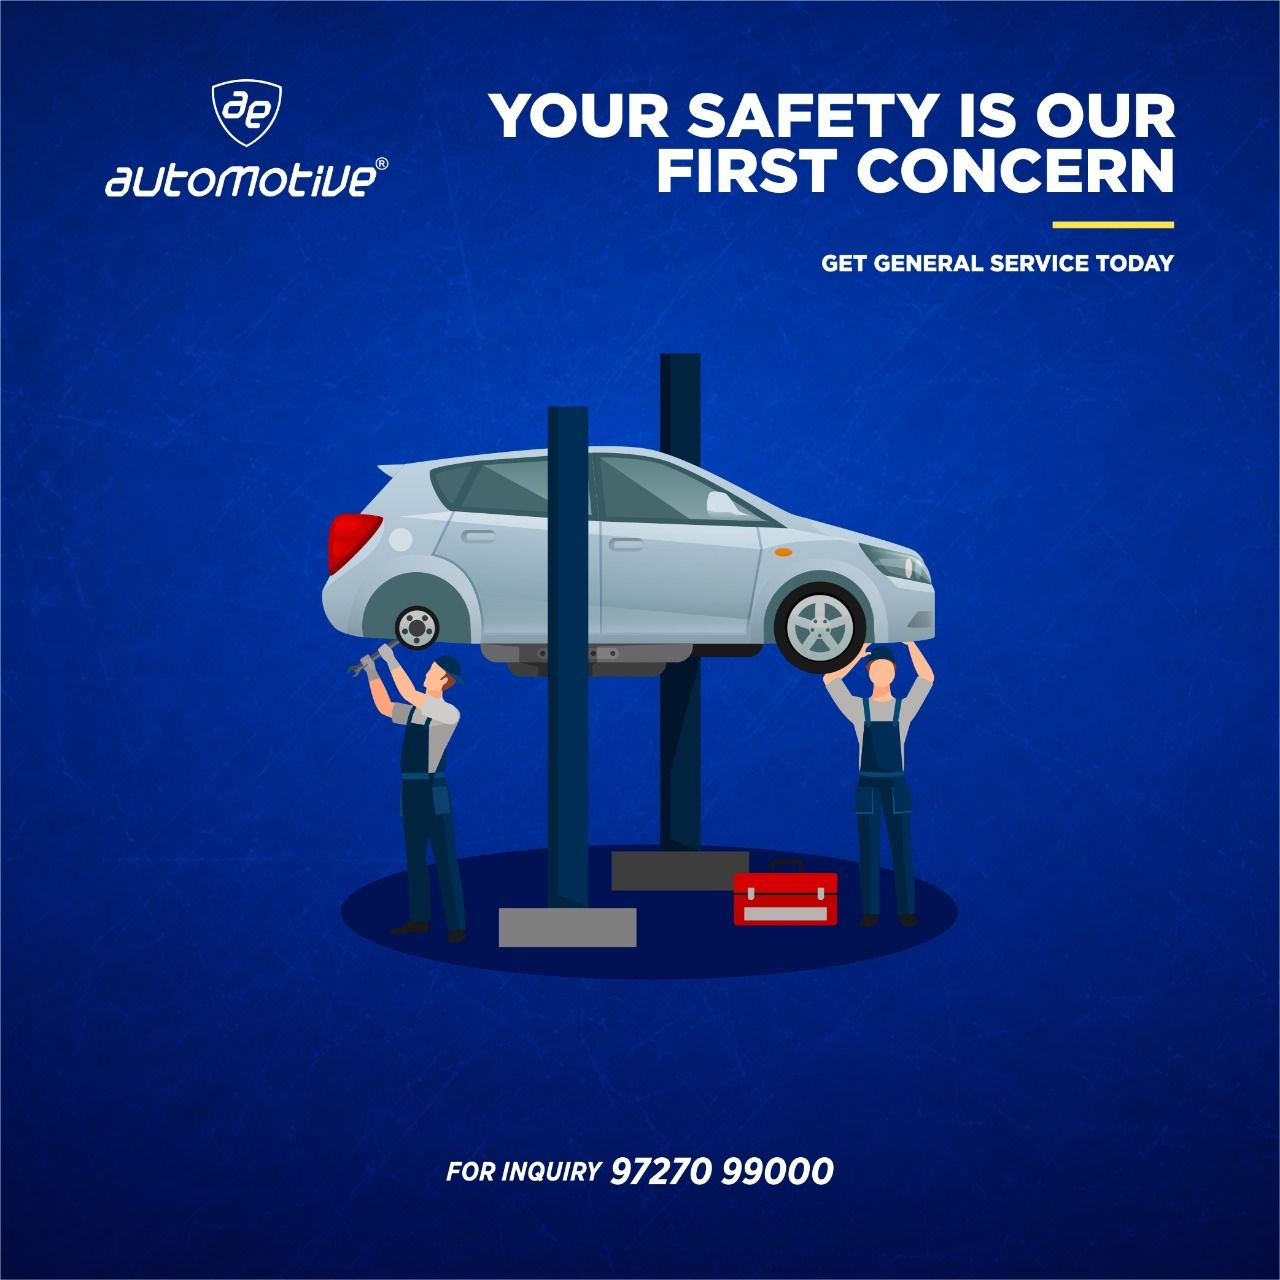 Stay alert so you don't get hurt. Your safety is our First